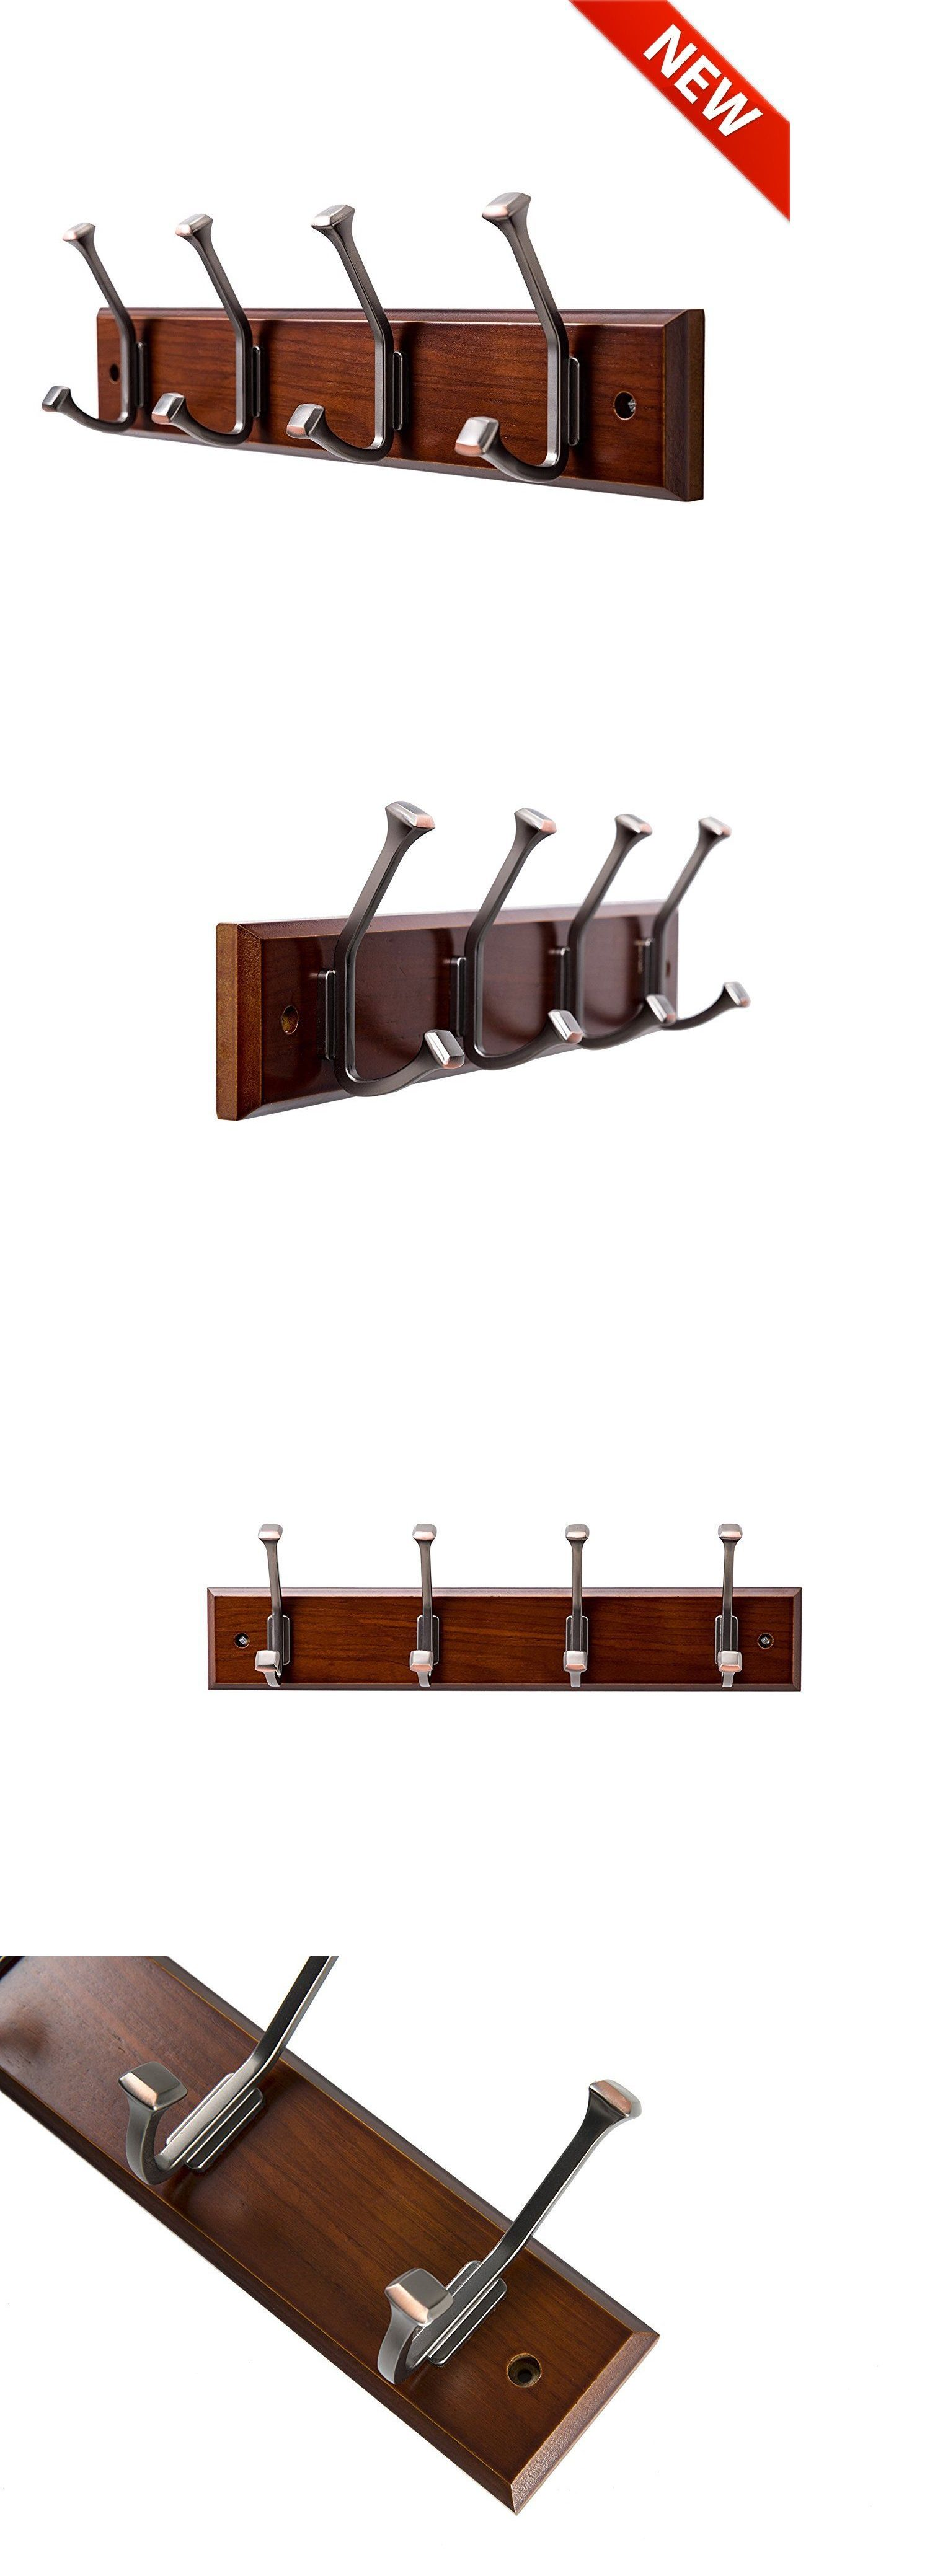 b7b66ccf571 Coat and Hat Racks 22656  Wooden Coat Rack Wall Mount 4 Double Hooks Walnut  Color 16 Rail Modern Entryway -  BUY IT NOW ONLY   17.55 on eBay!